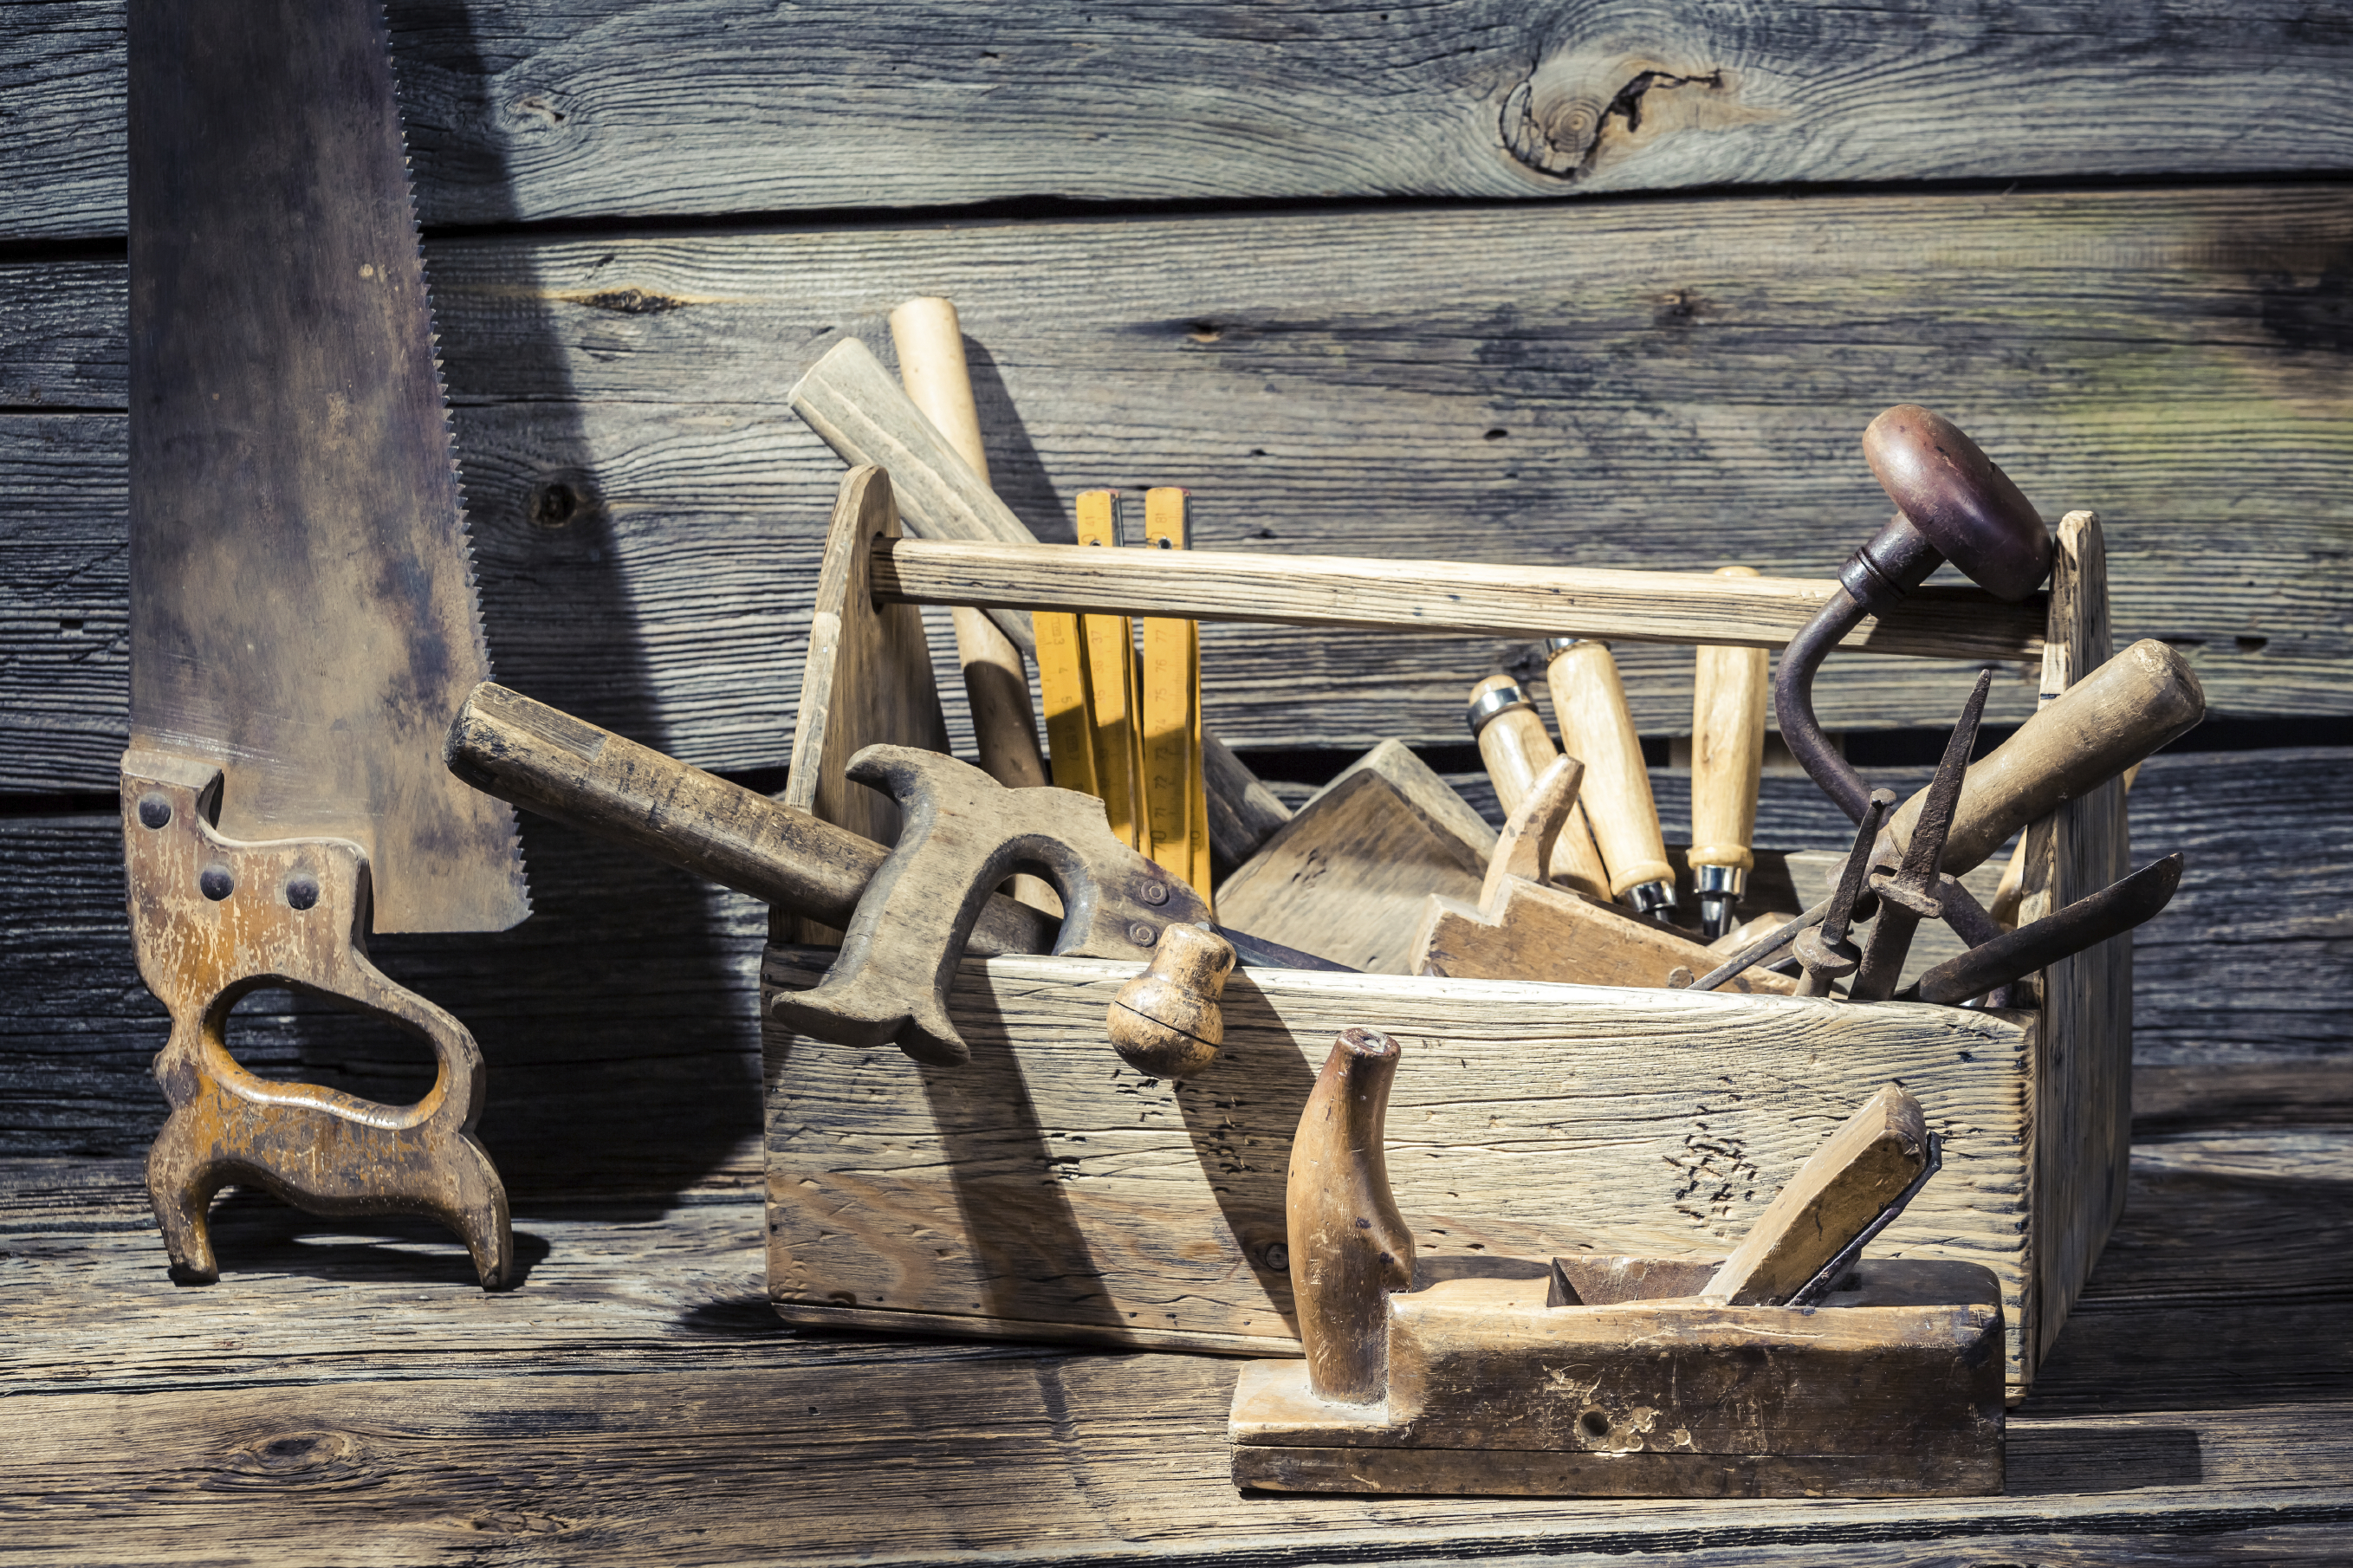 Vintage carpenter tools in a wooden box